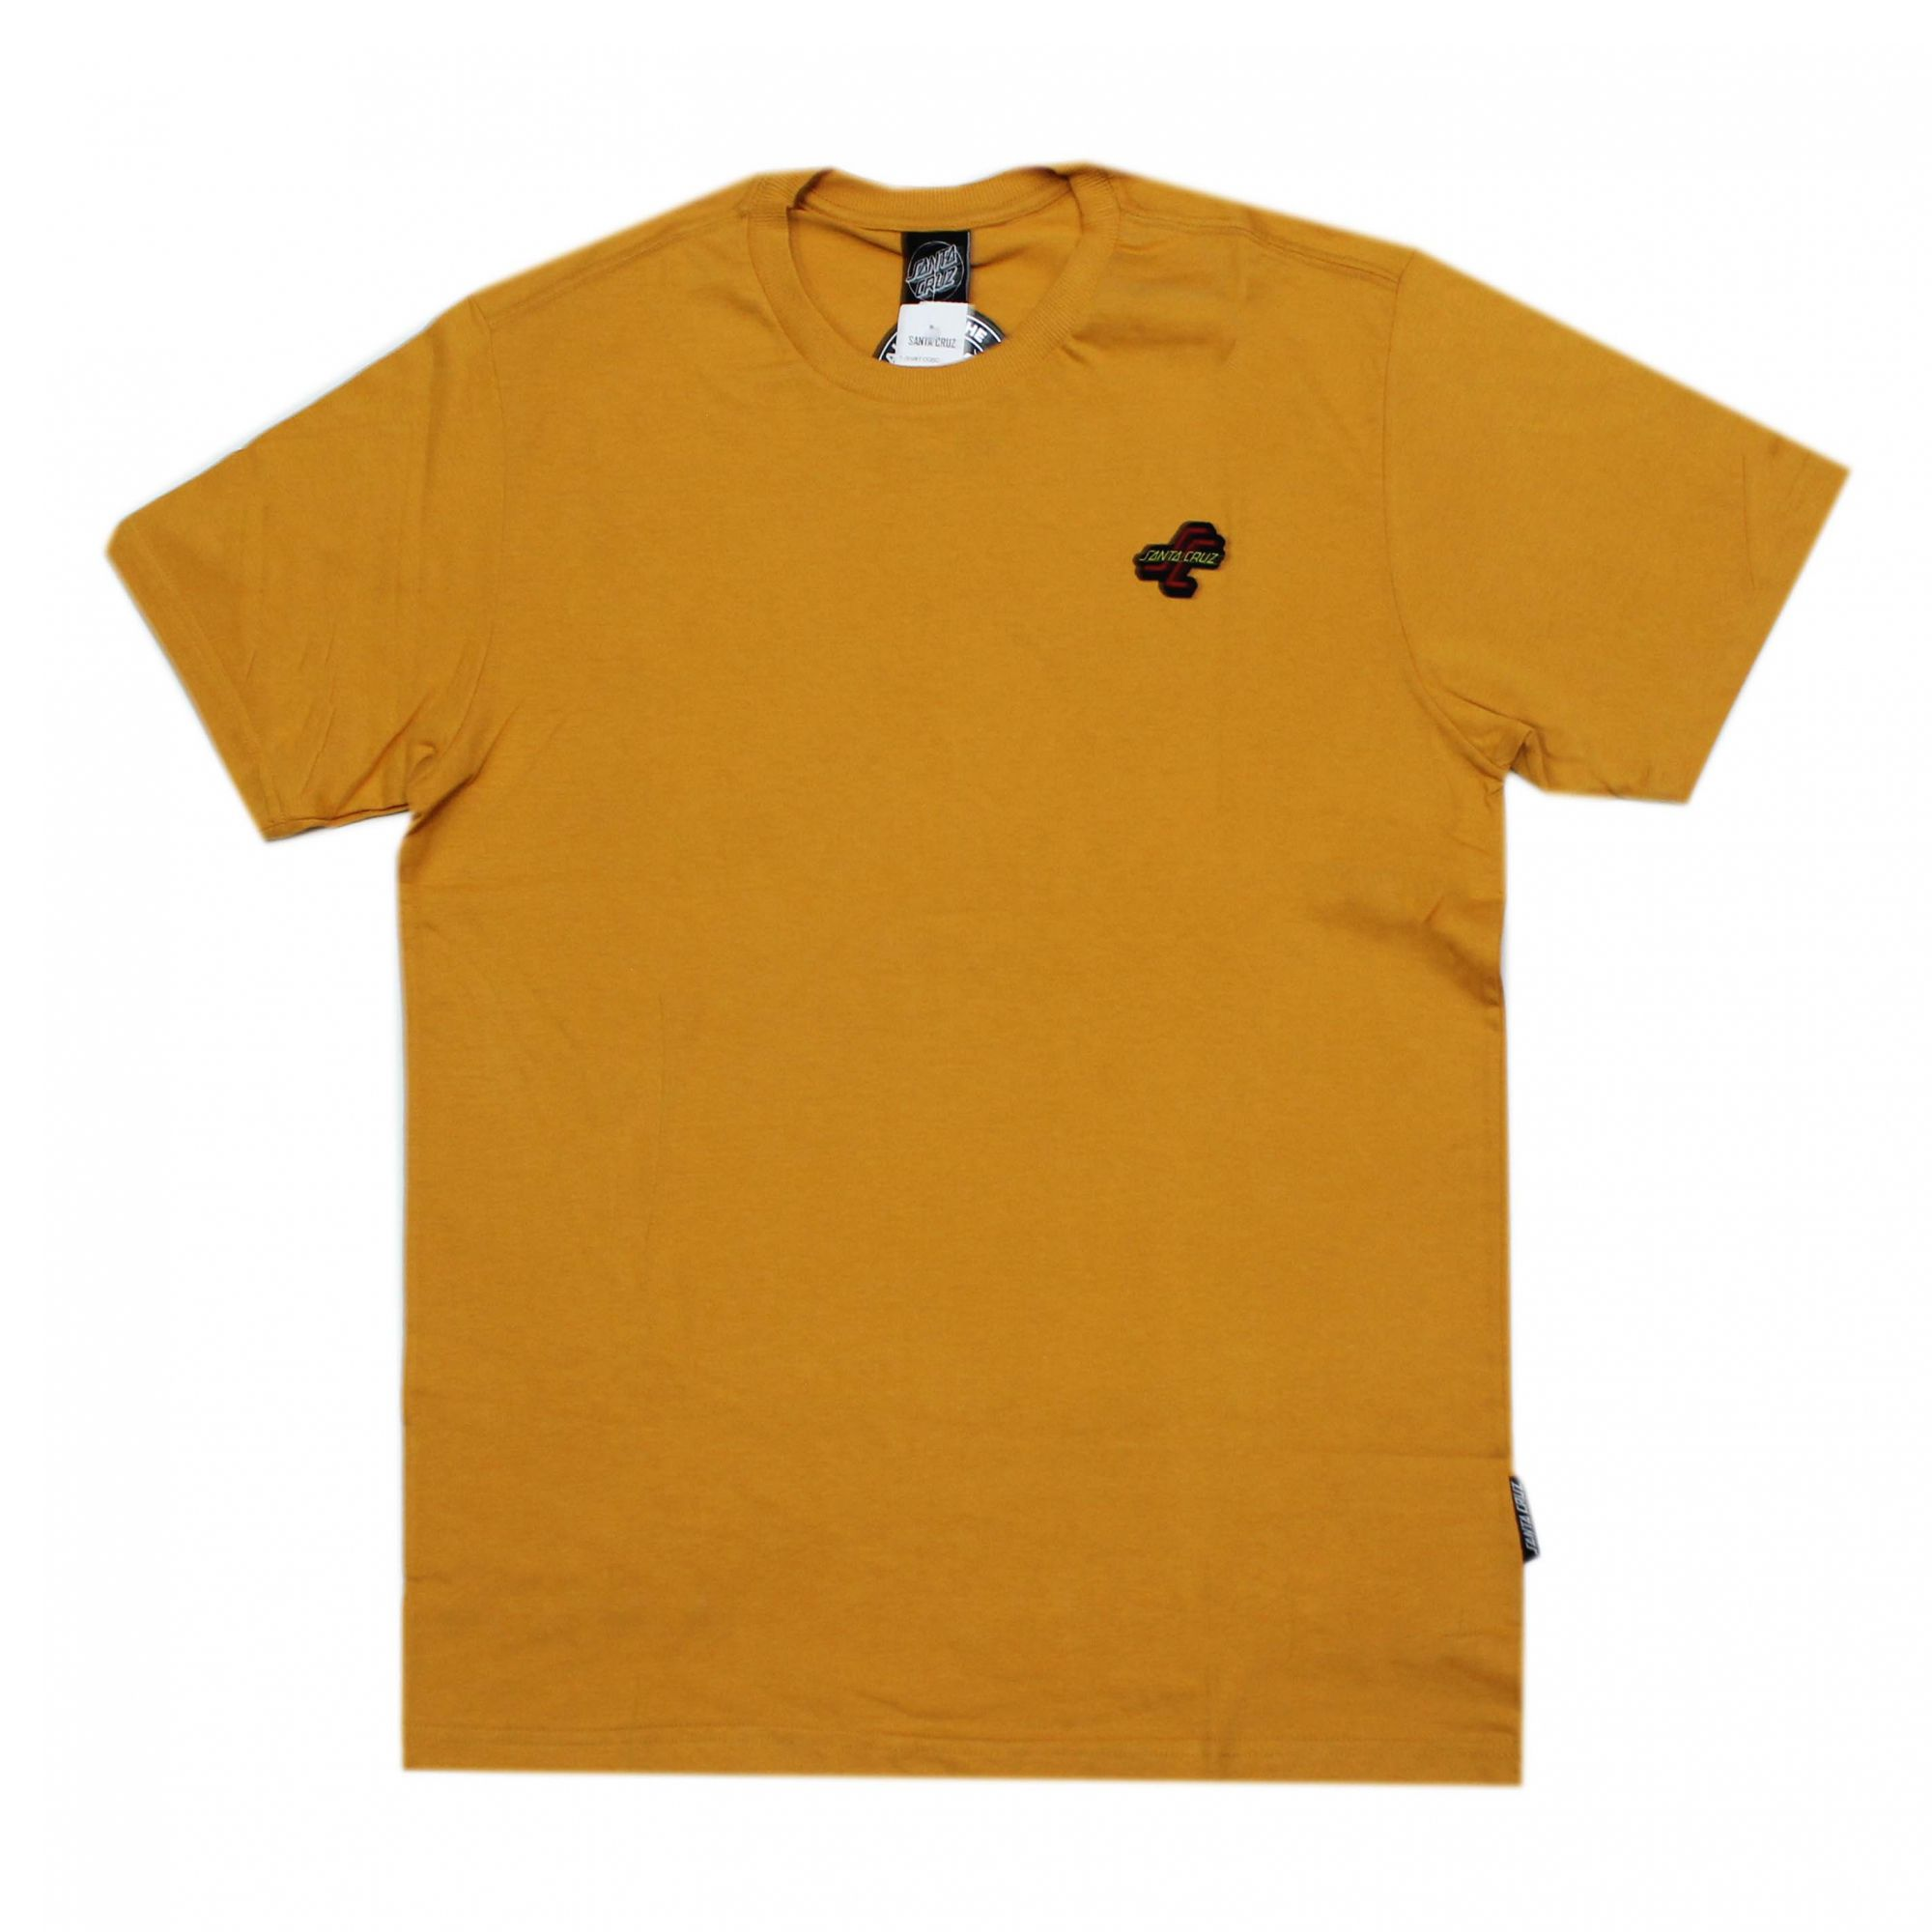 Camiseta Santa Cruz Mini Patch OGSC - Amarelo